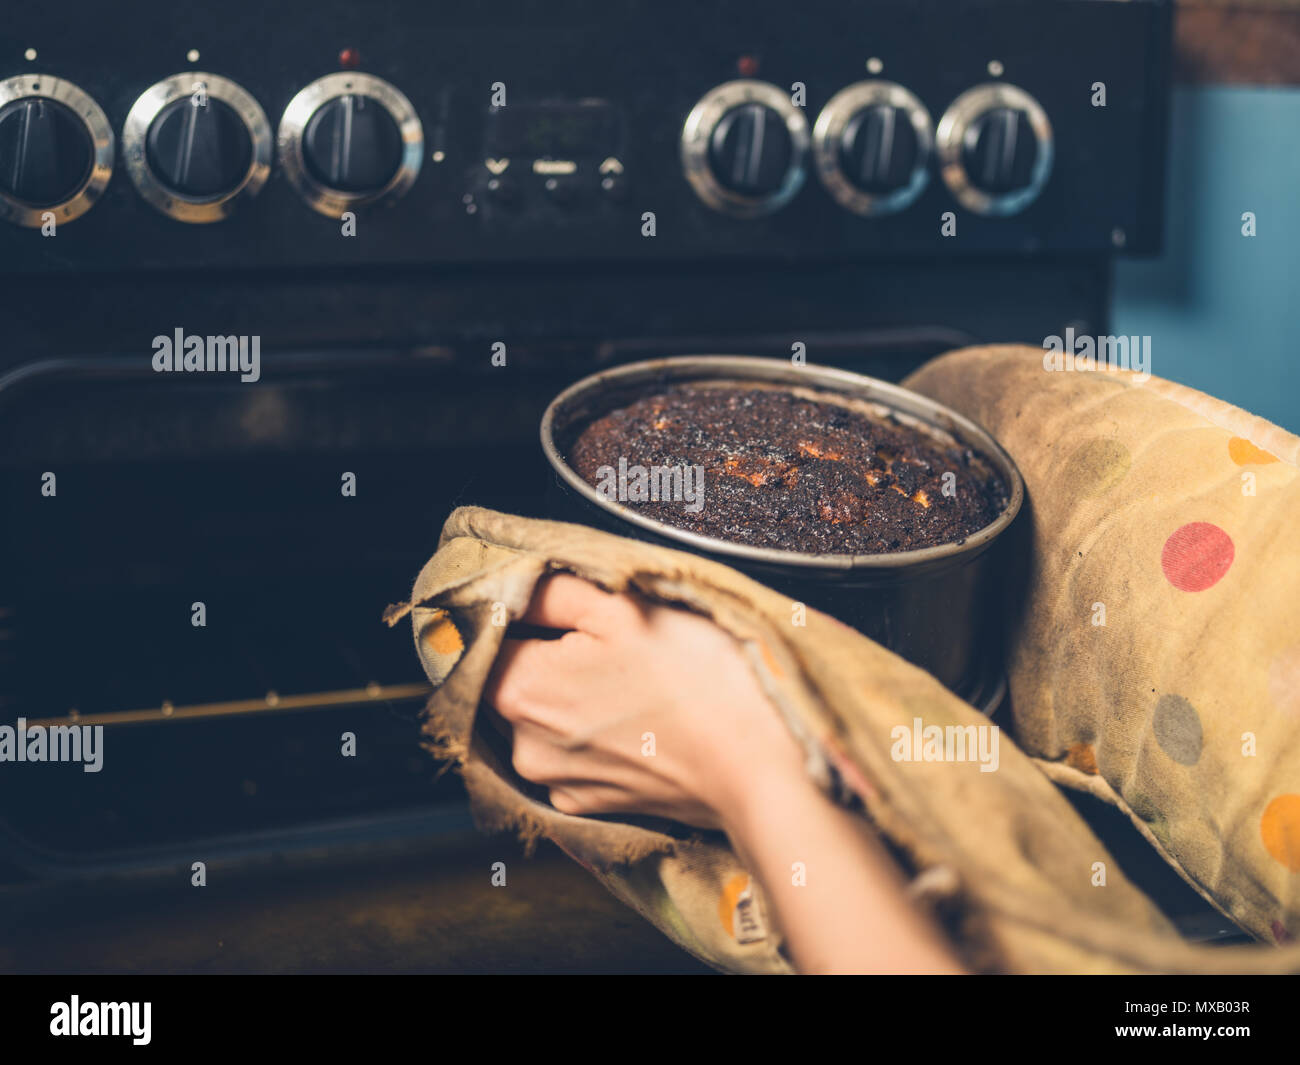 The hands of a woman is removing a burnt cake from the oven - Stock Image